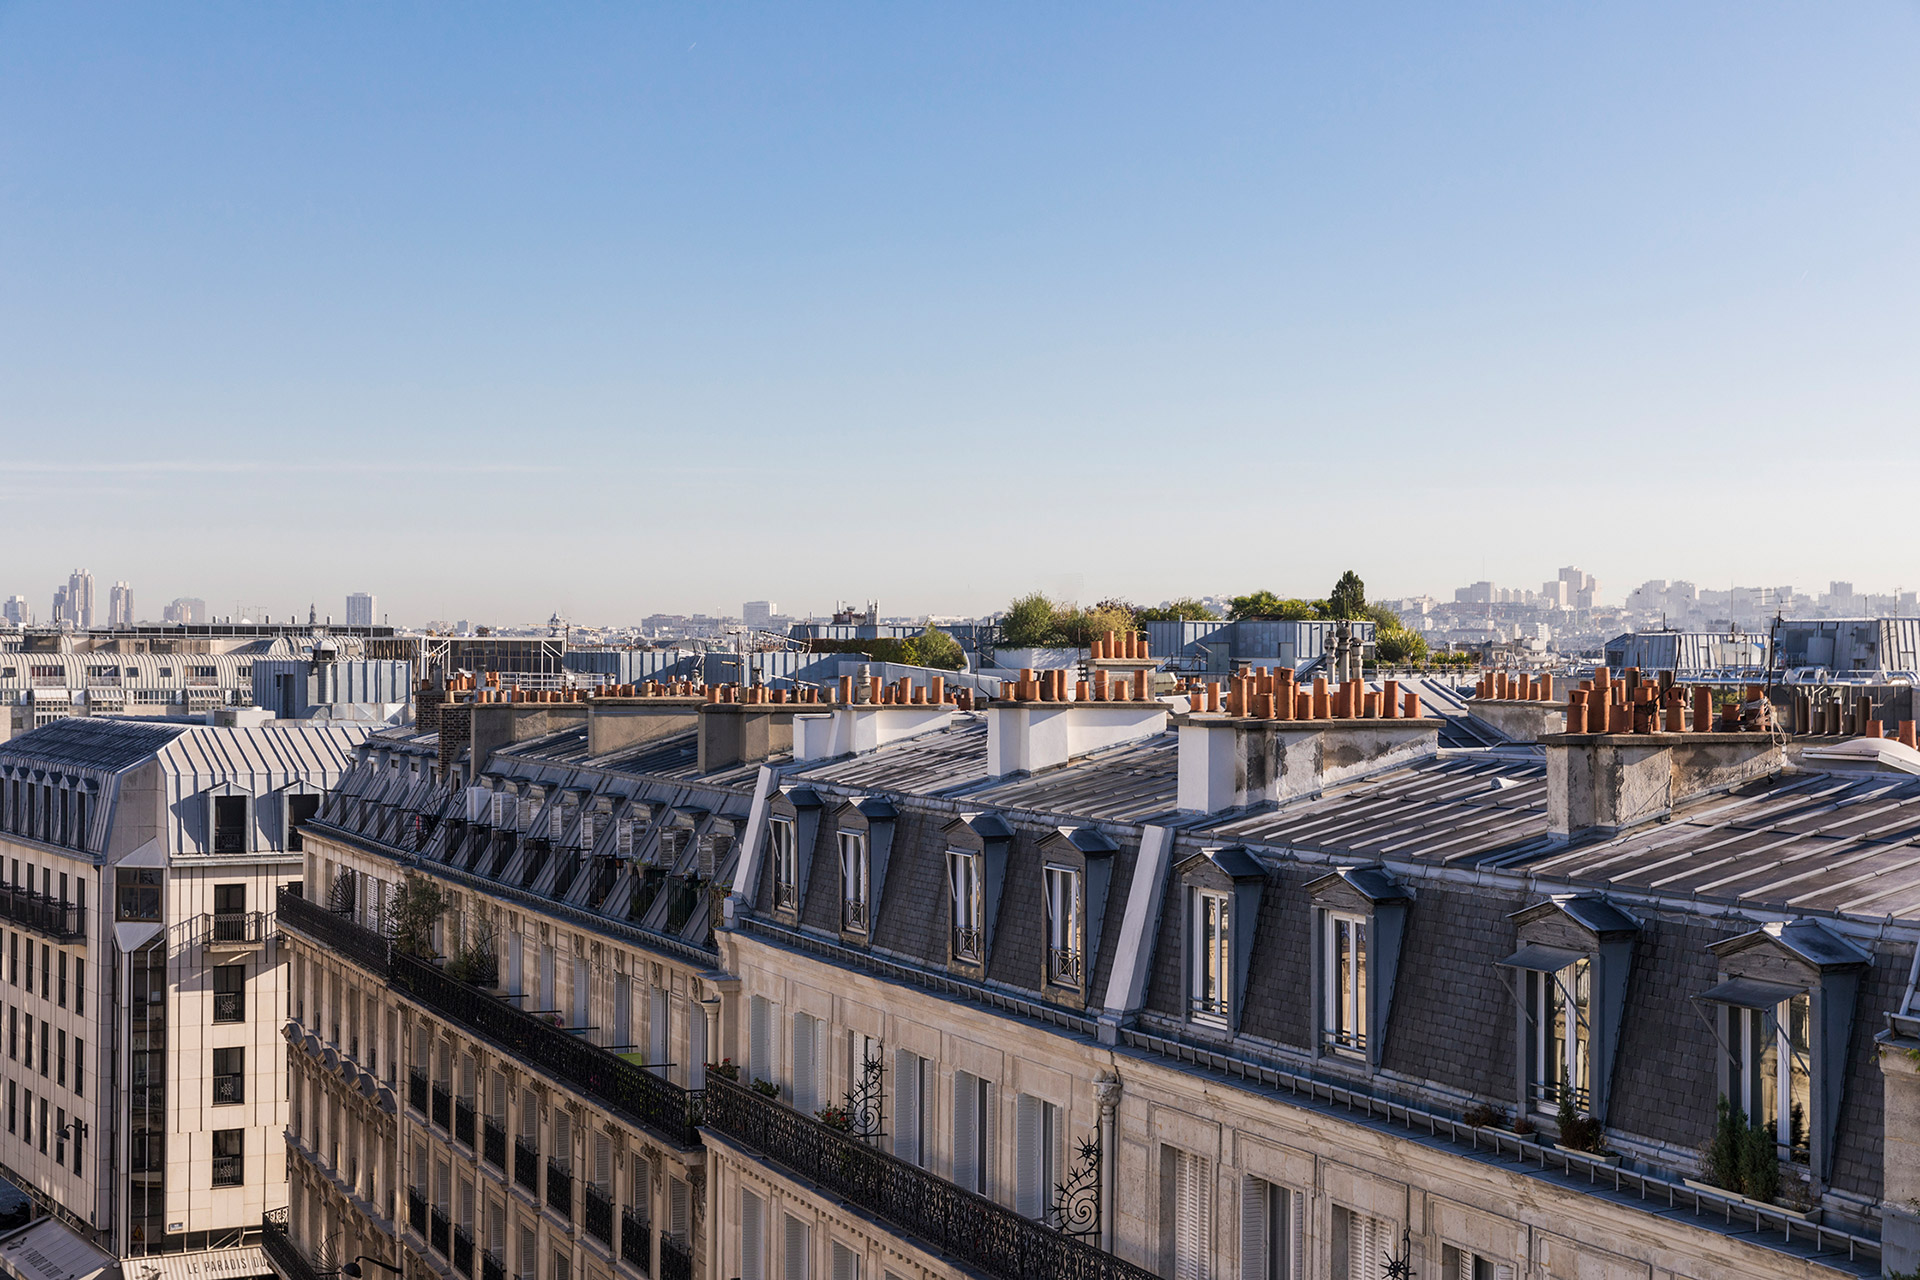 Maison Albar Hotels Le Pont-Neuf view on Paris rooftops